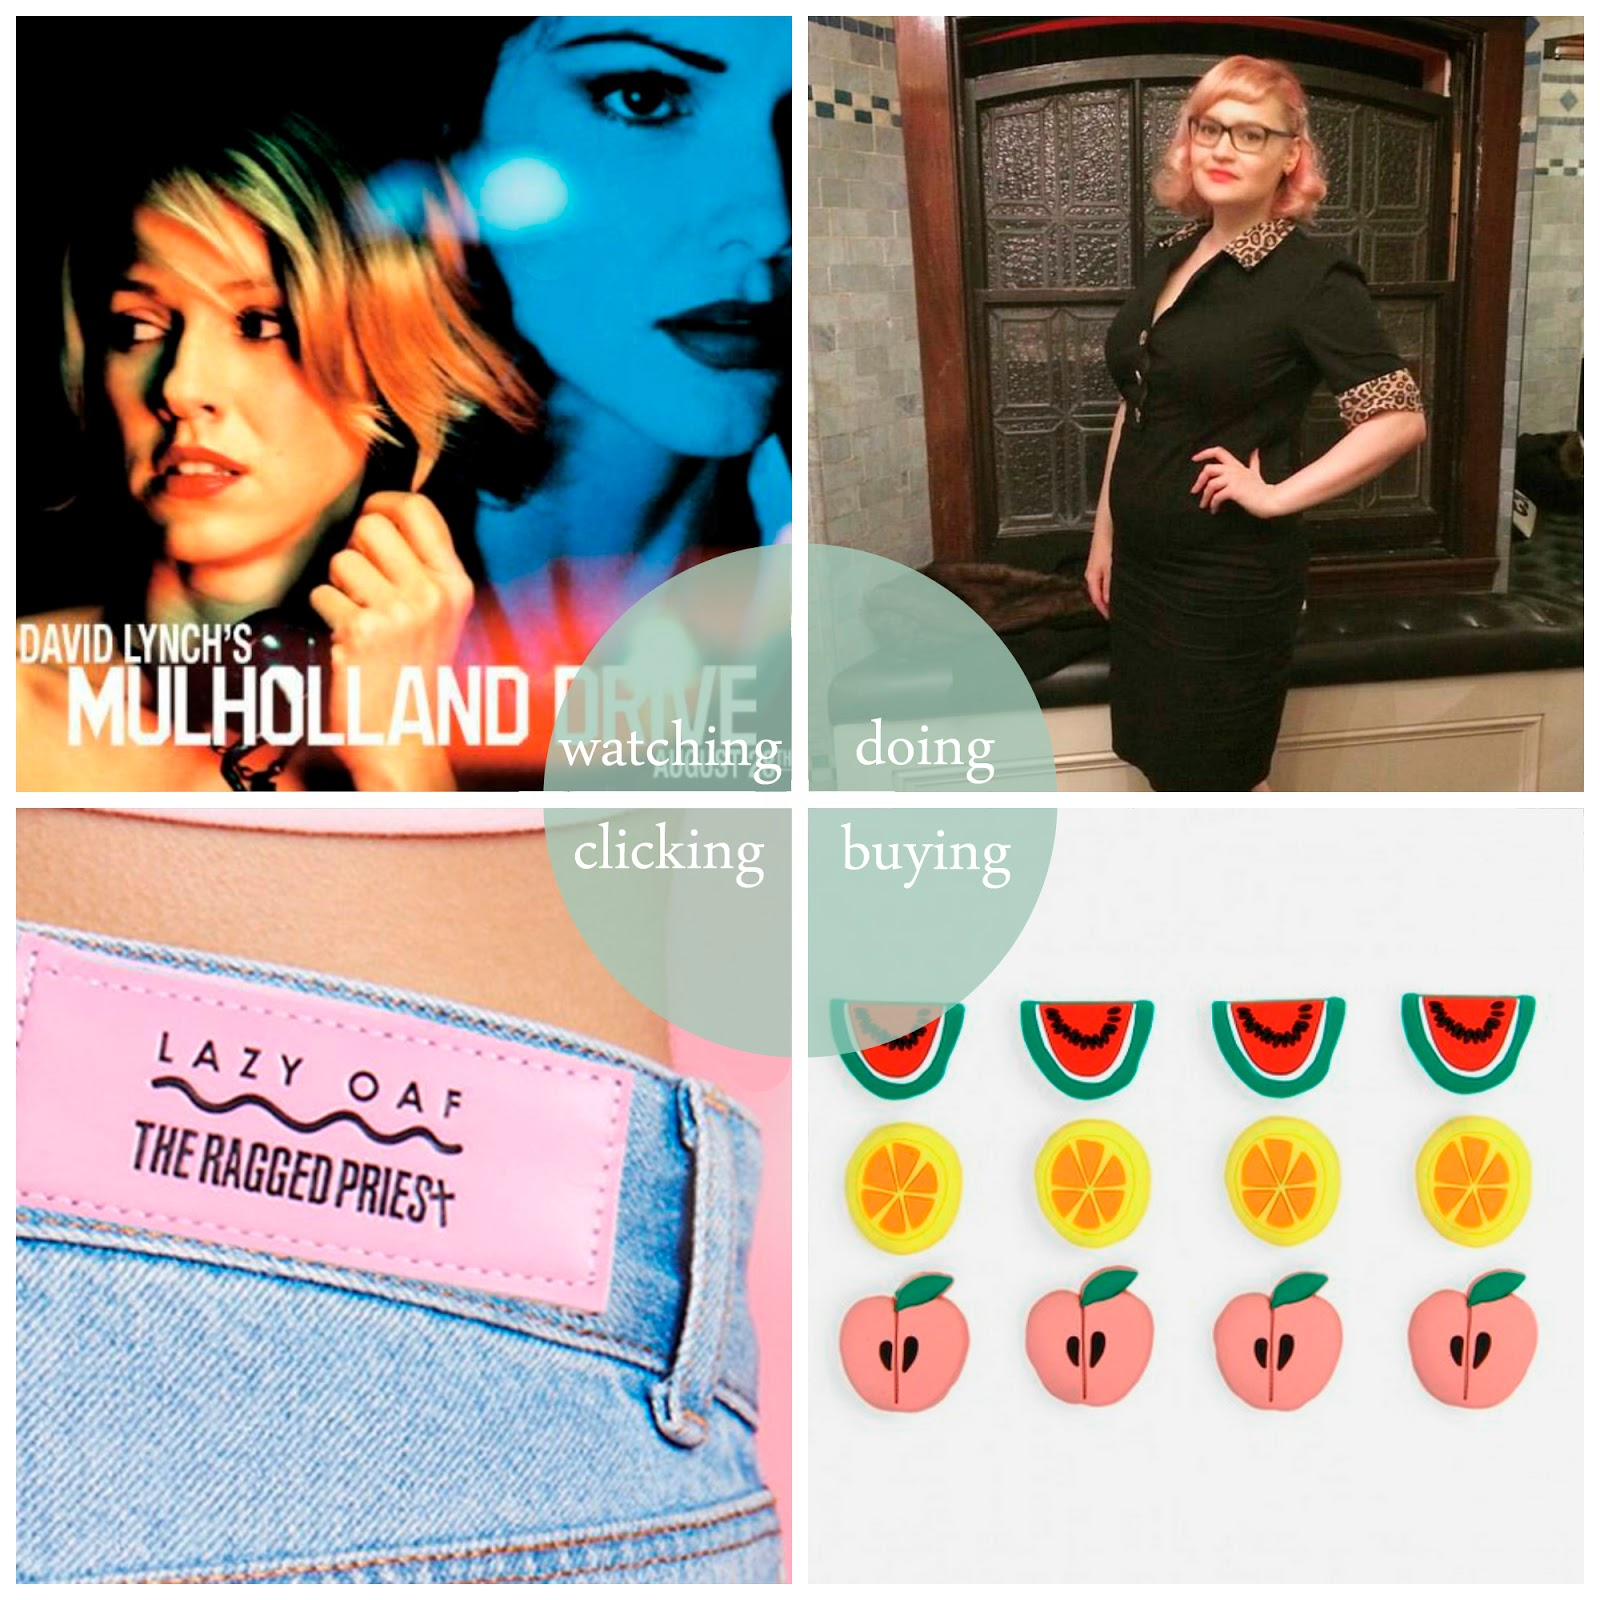 The Burlesque Ball Edinburgh, VOodoo Rooms Edinburgh, Paperchase accessories, ways to accessorise your work office, Lazy Oaf x Ragged Priest, Lazy Oaf x Casper, Mulholland Drive, #girlgangweekender